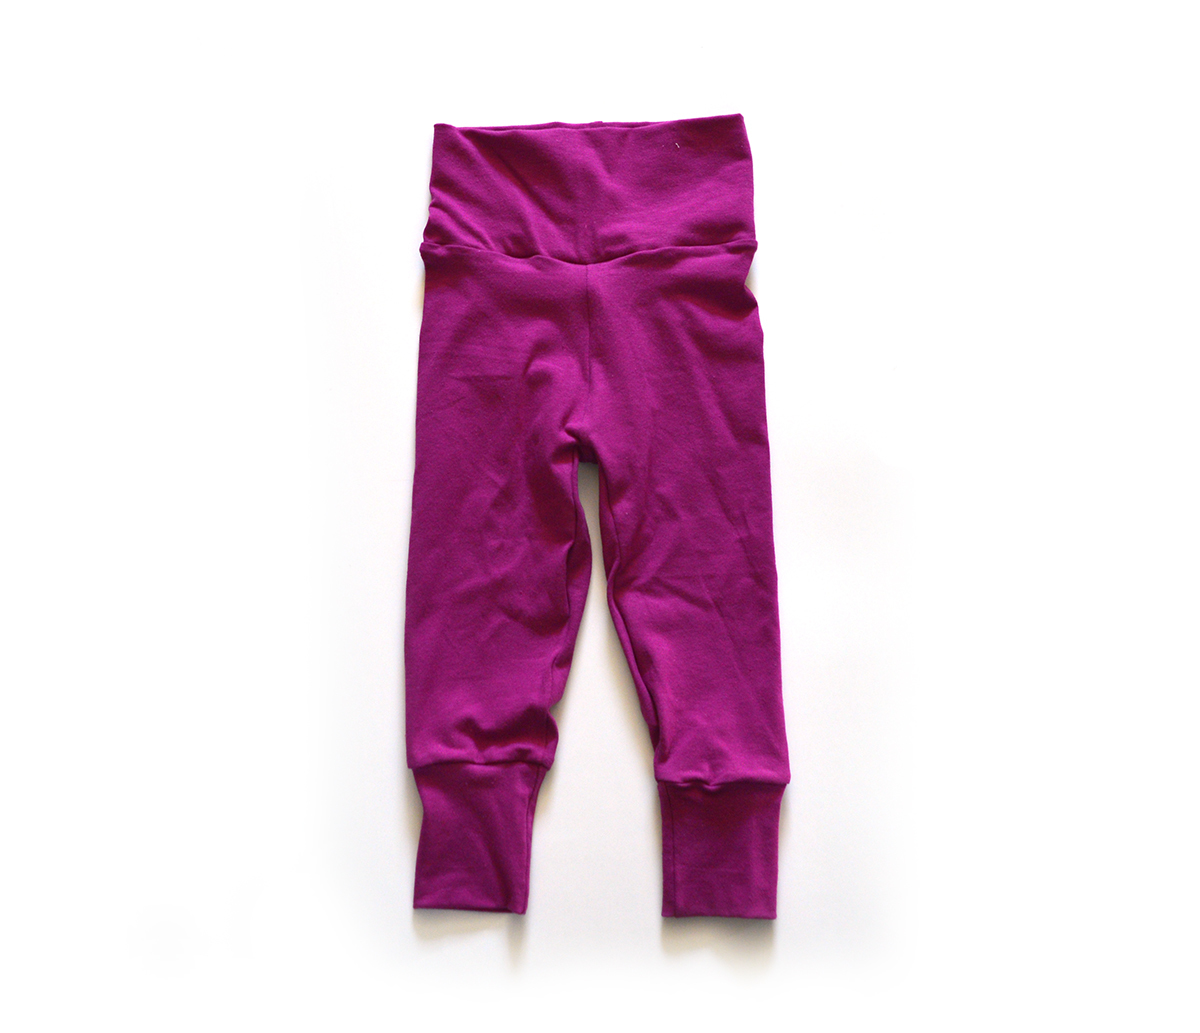 Little Sprout One-Size Pants™ Fuchsia - Cotton 00581